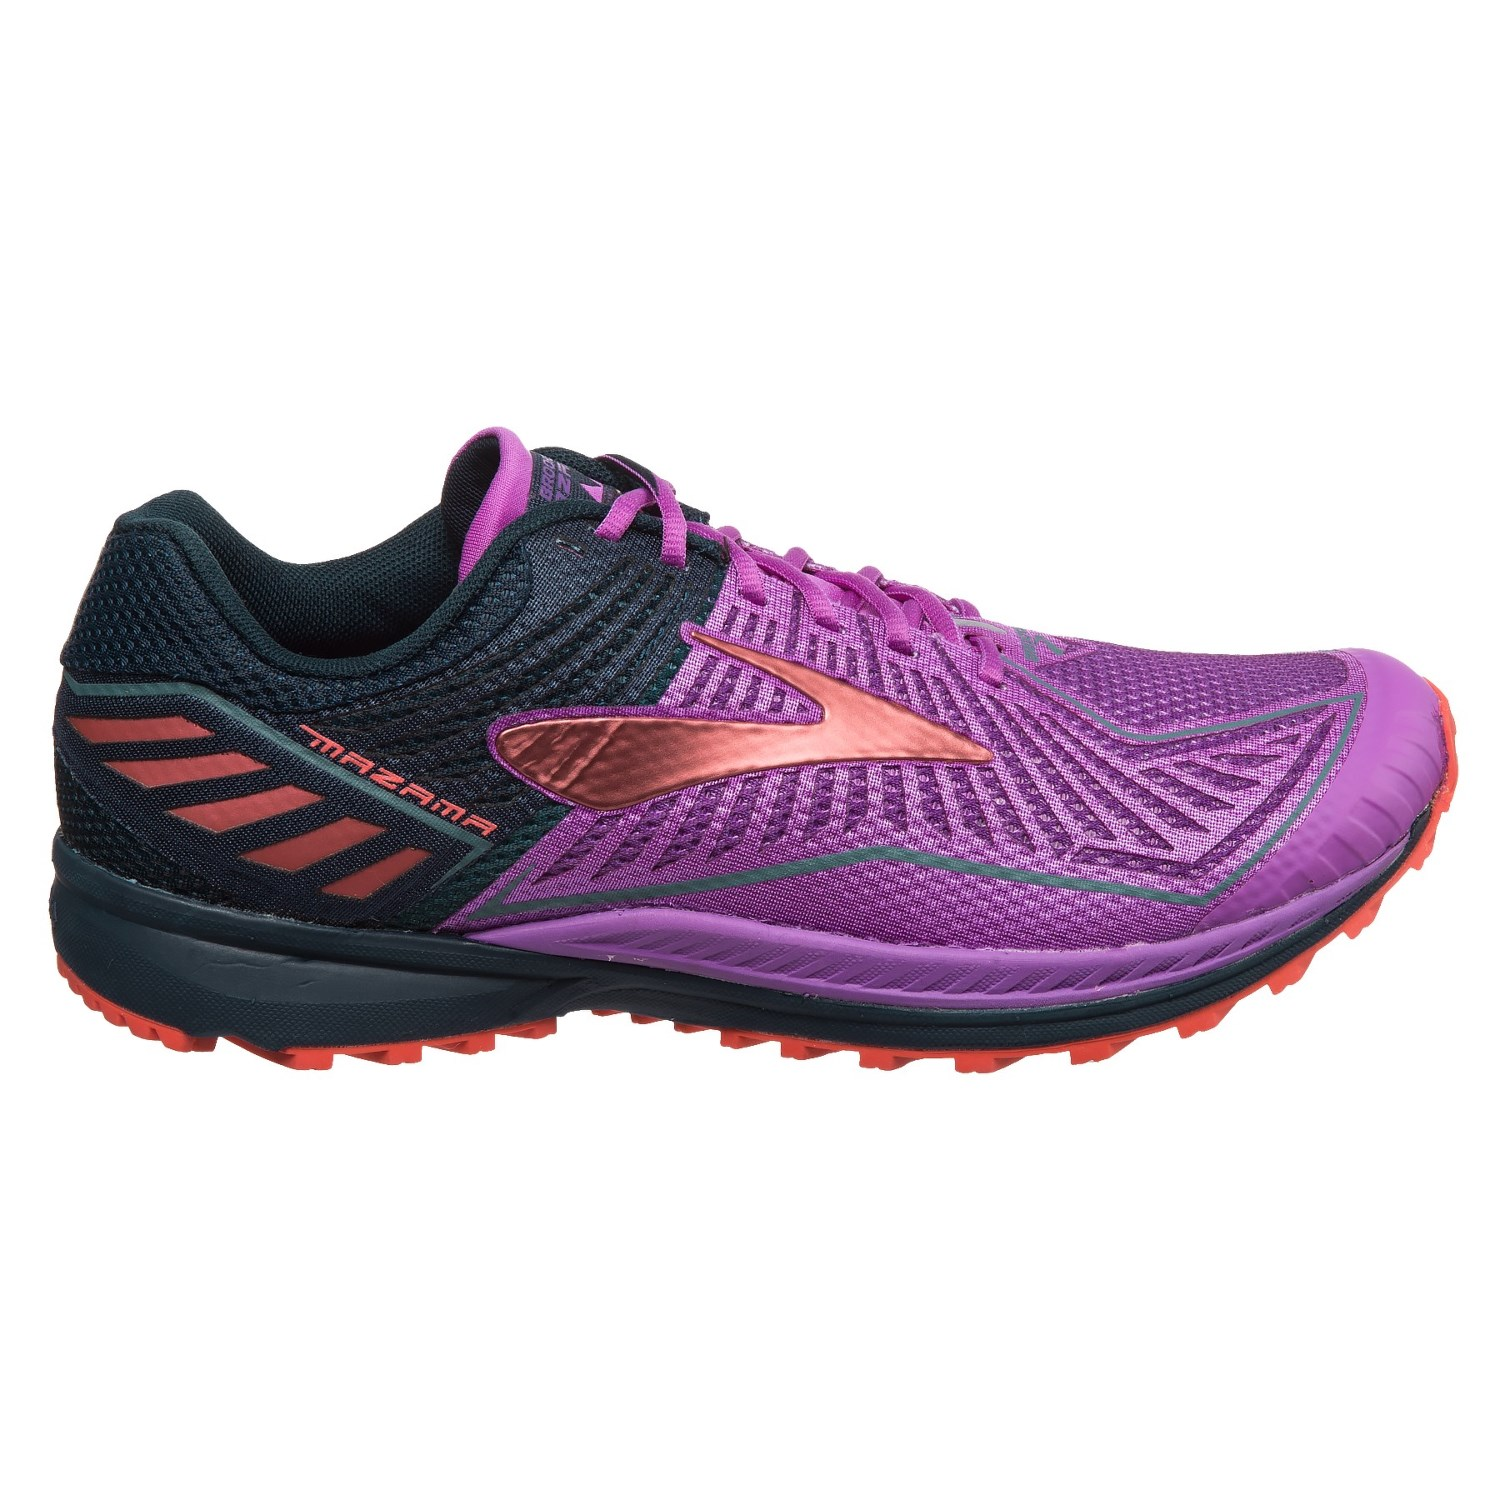 6d340c264e85b Brooks Mazama Trail Running Shoes (For Women)